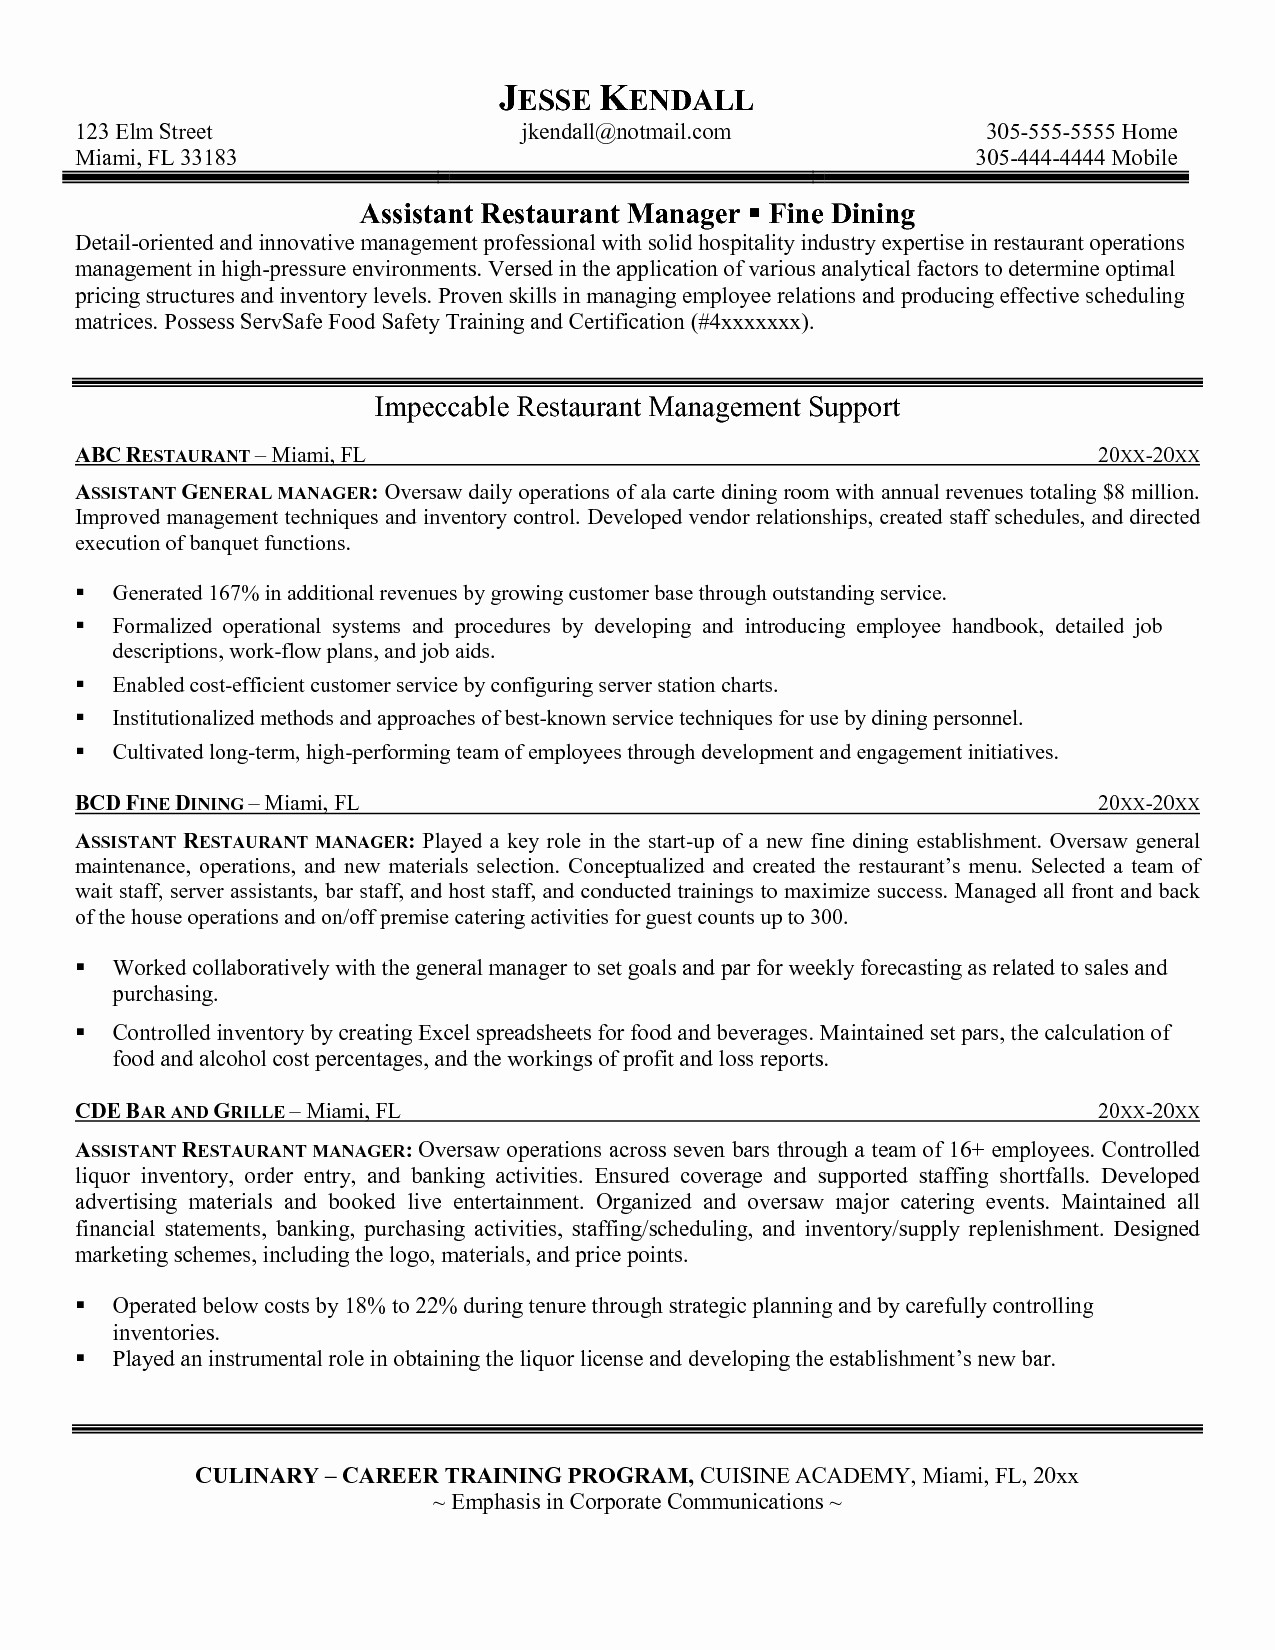 Operations Manager Cover Letter Template Samples